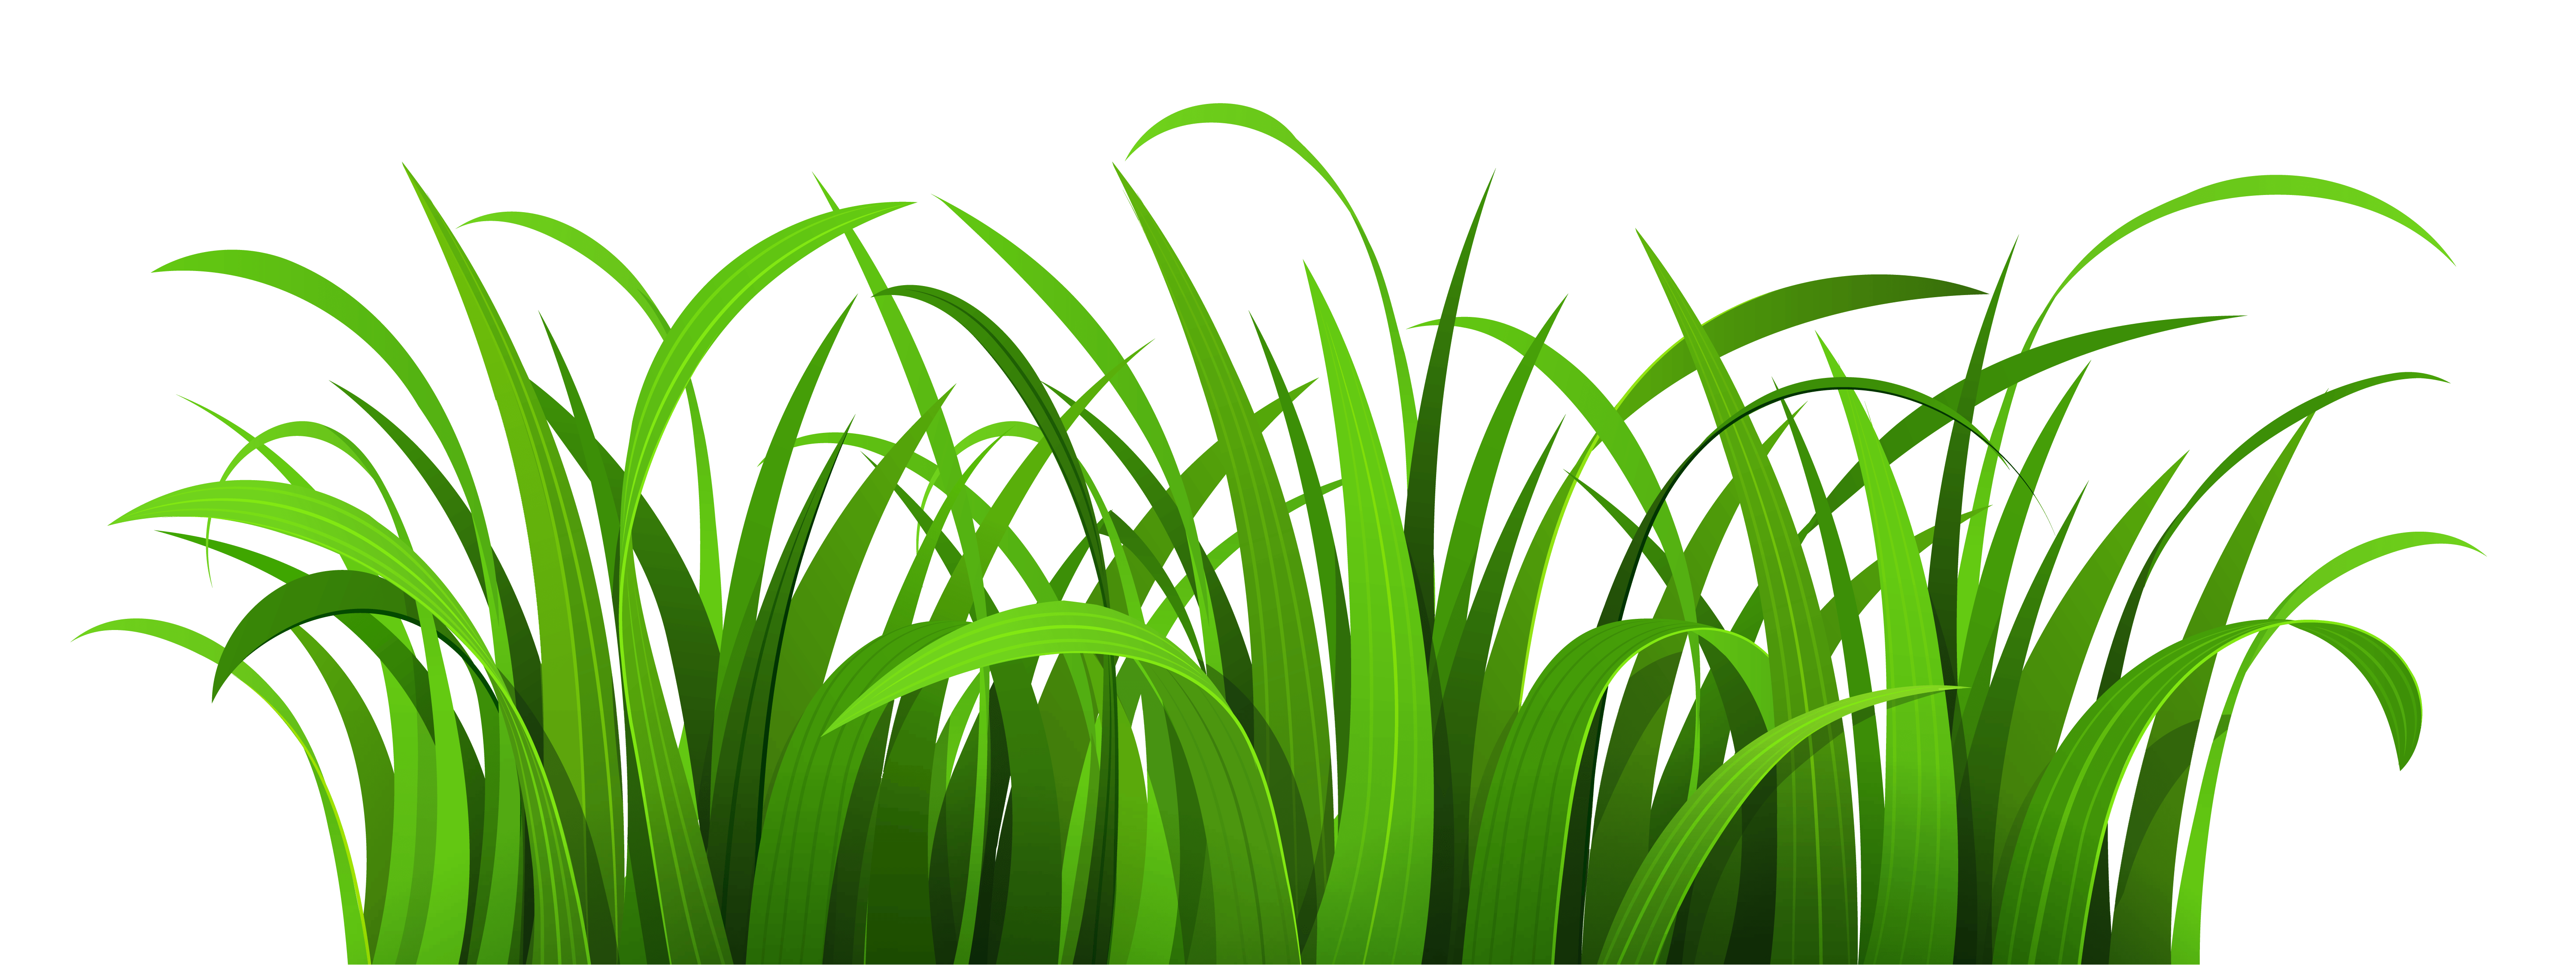 Free swamp background cliparts. Clipart grass tropical grass